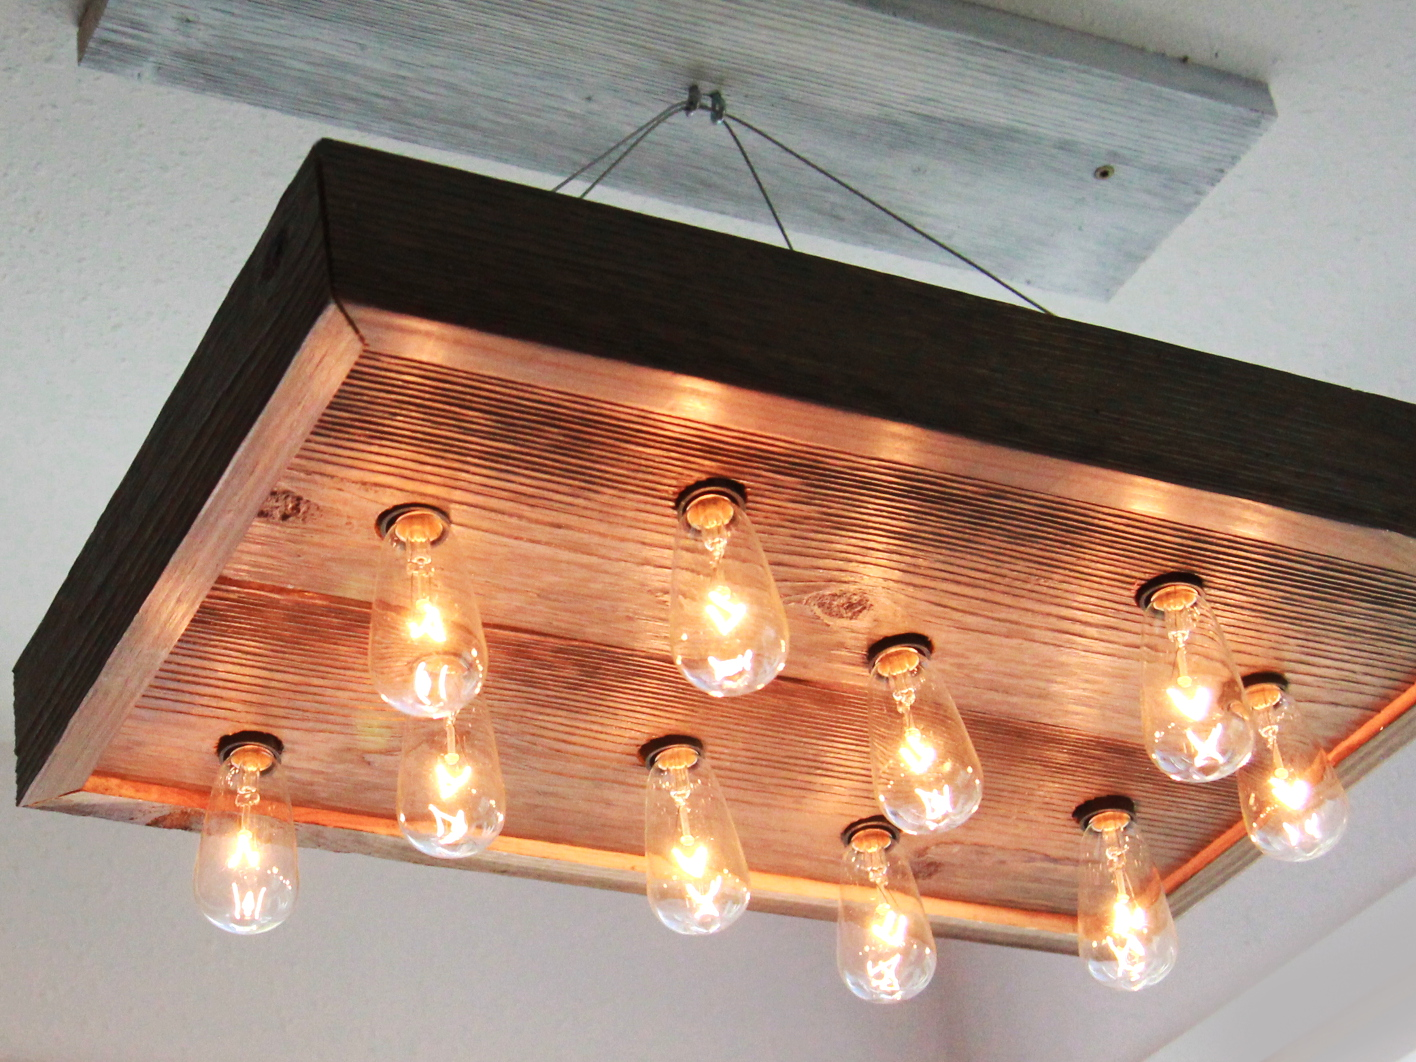 Picture of DIY String Light Chandelier for $40